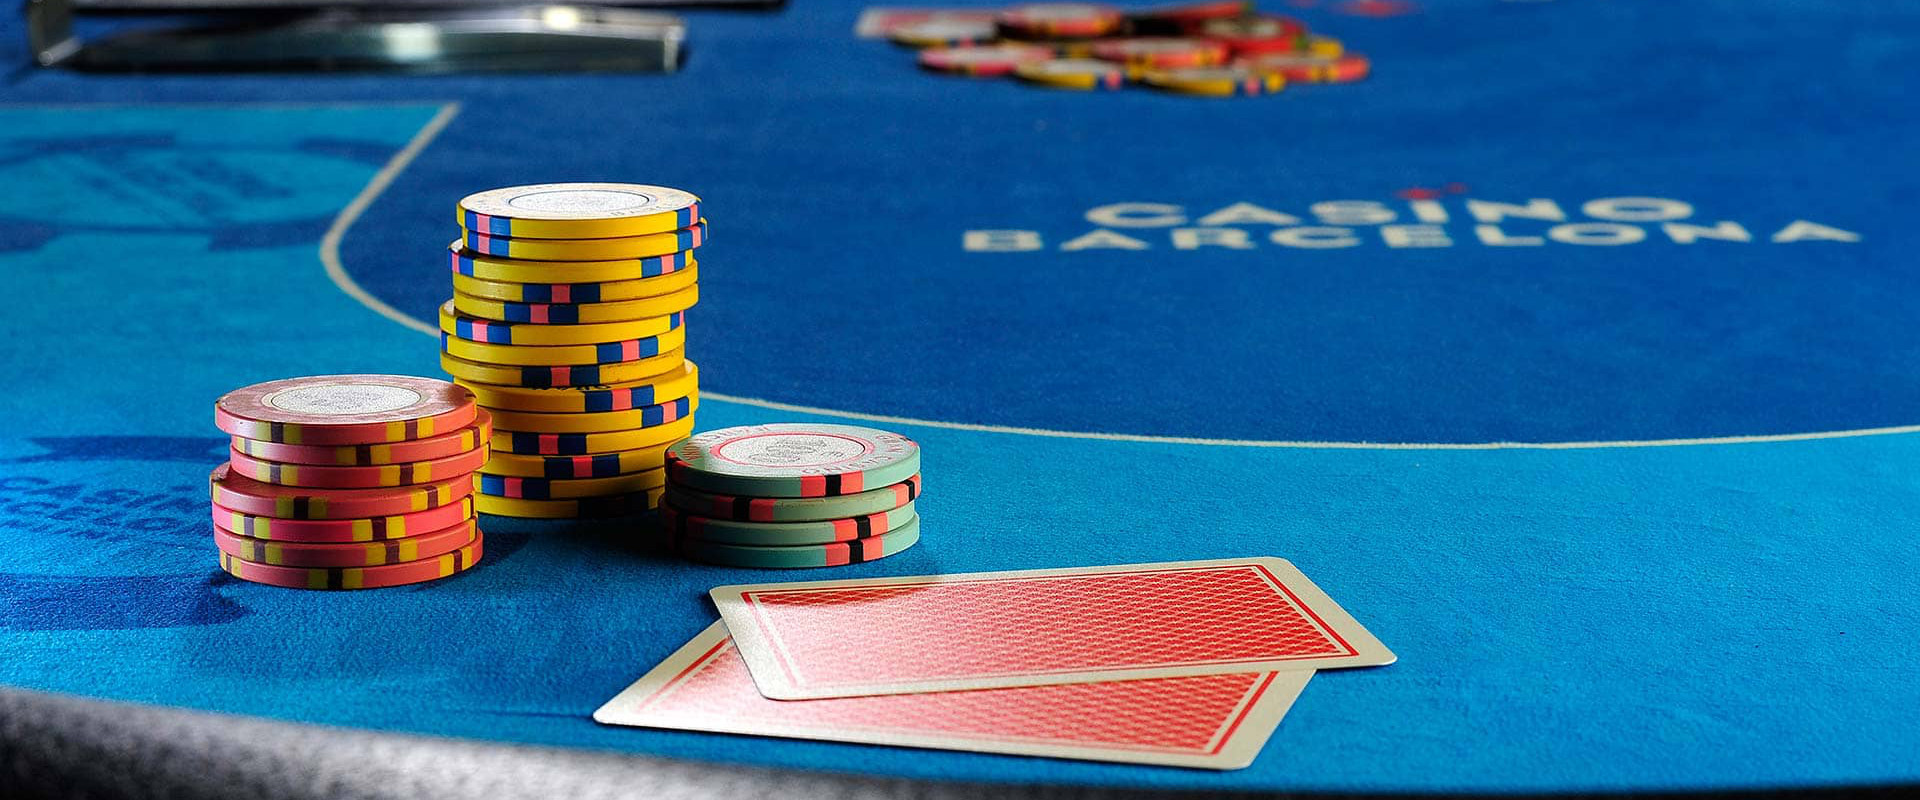 The Mistakes to Avoid in Poker